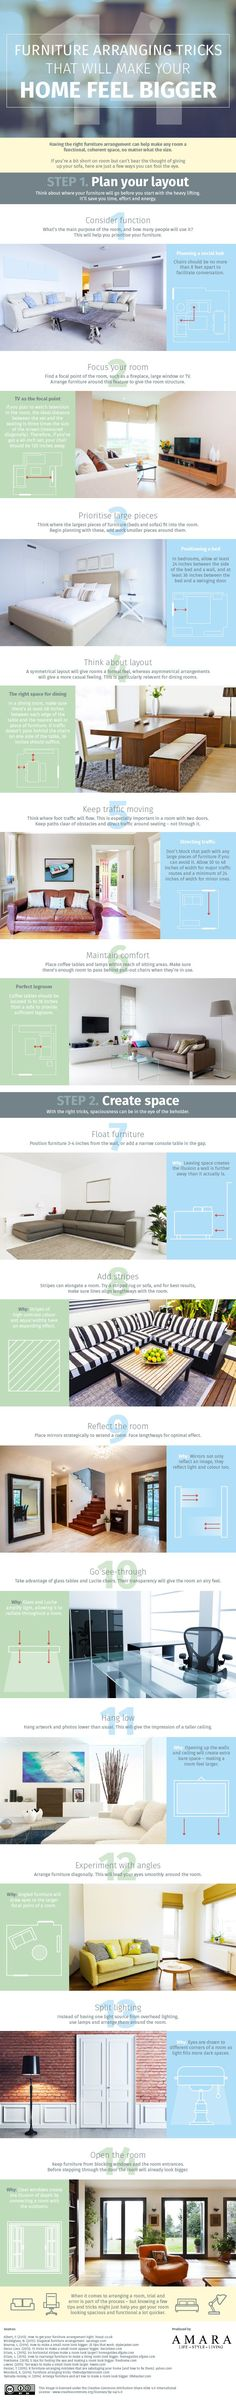 Discover our helpful infographic detailing fourteen tips to transform your interior into a harmonious & more spacious home. Creating more space has never been easier…